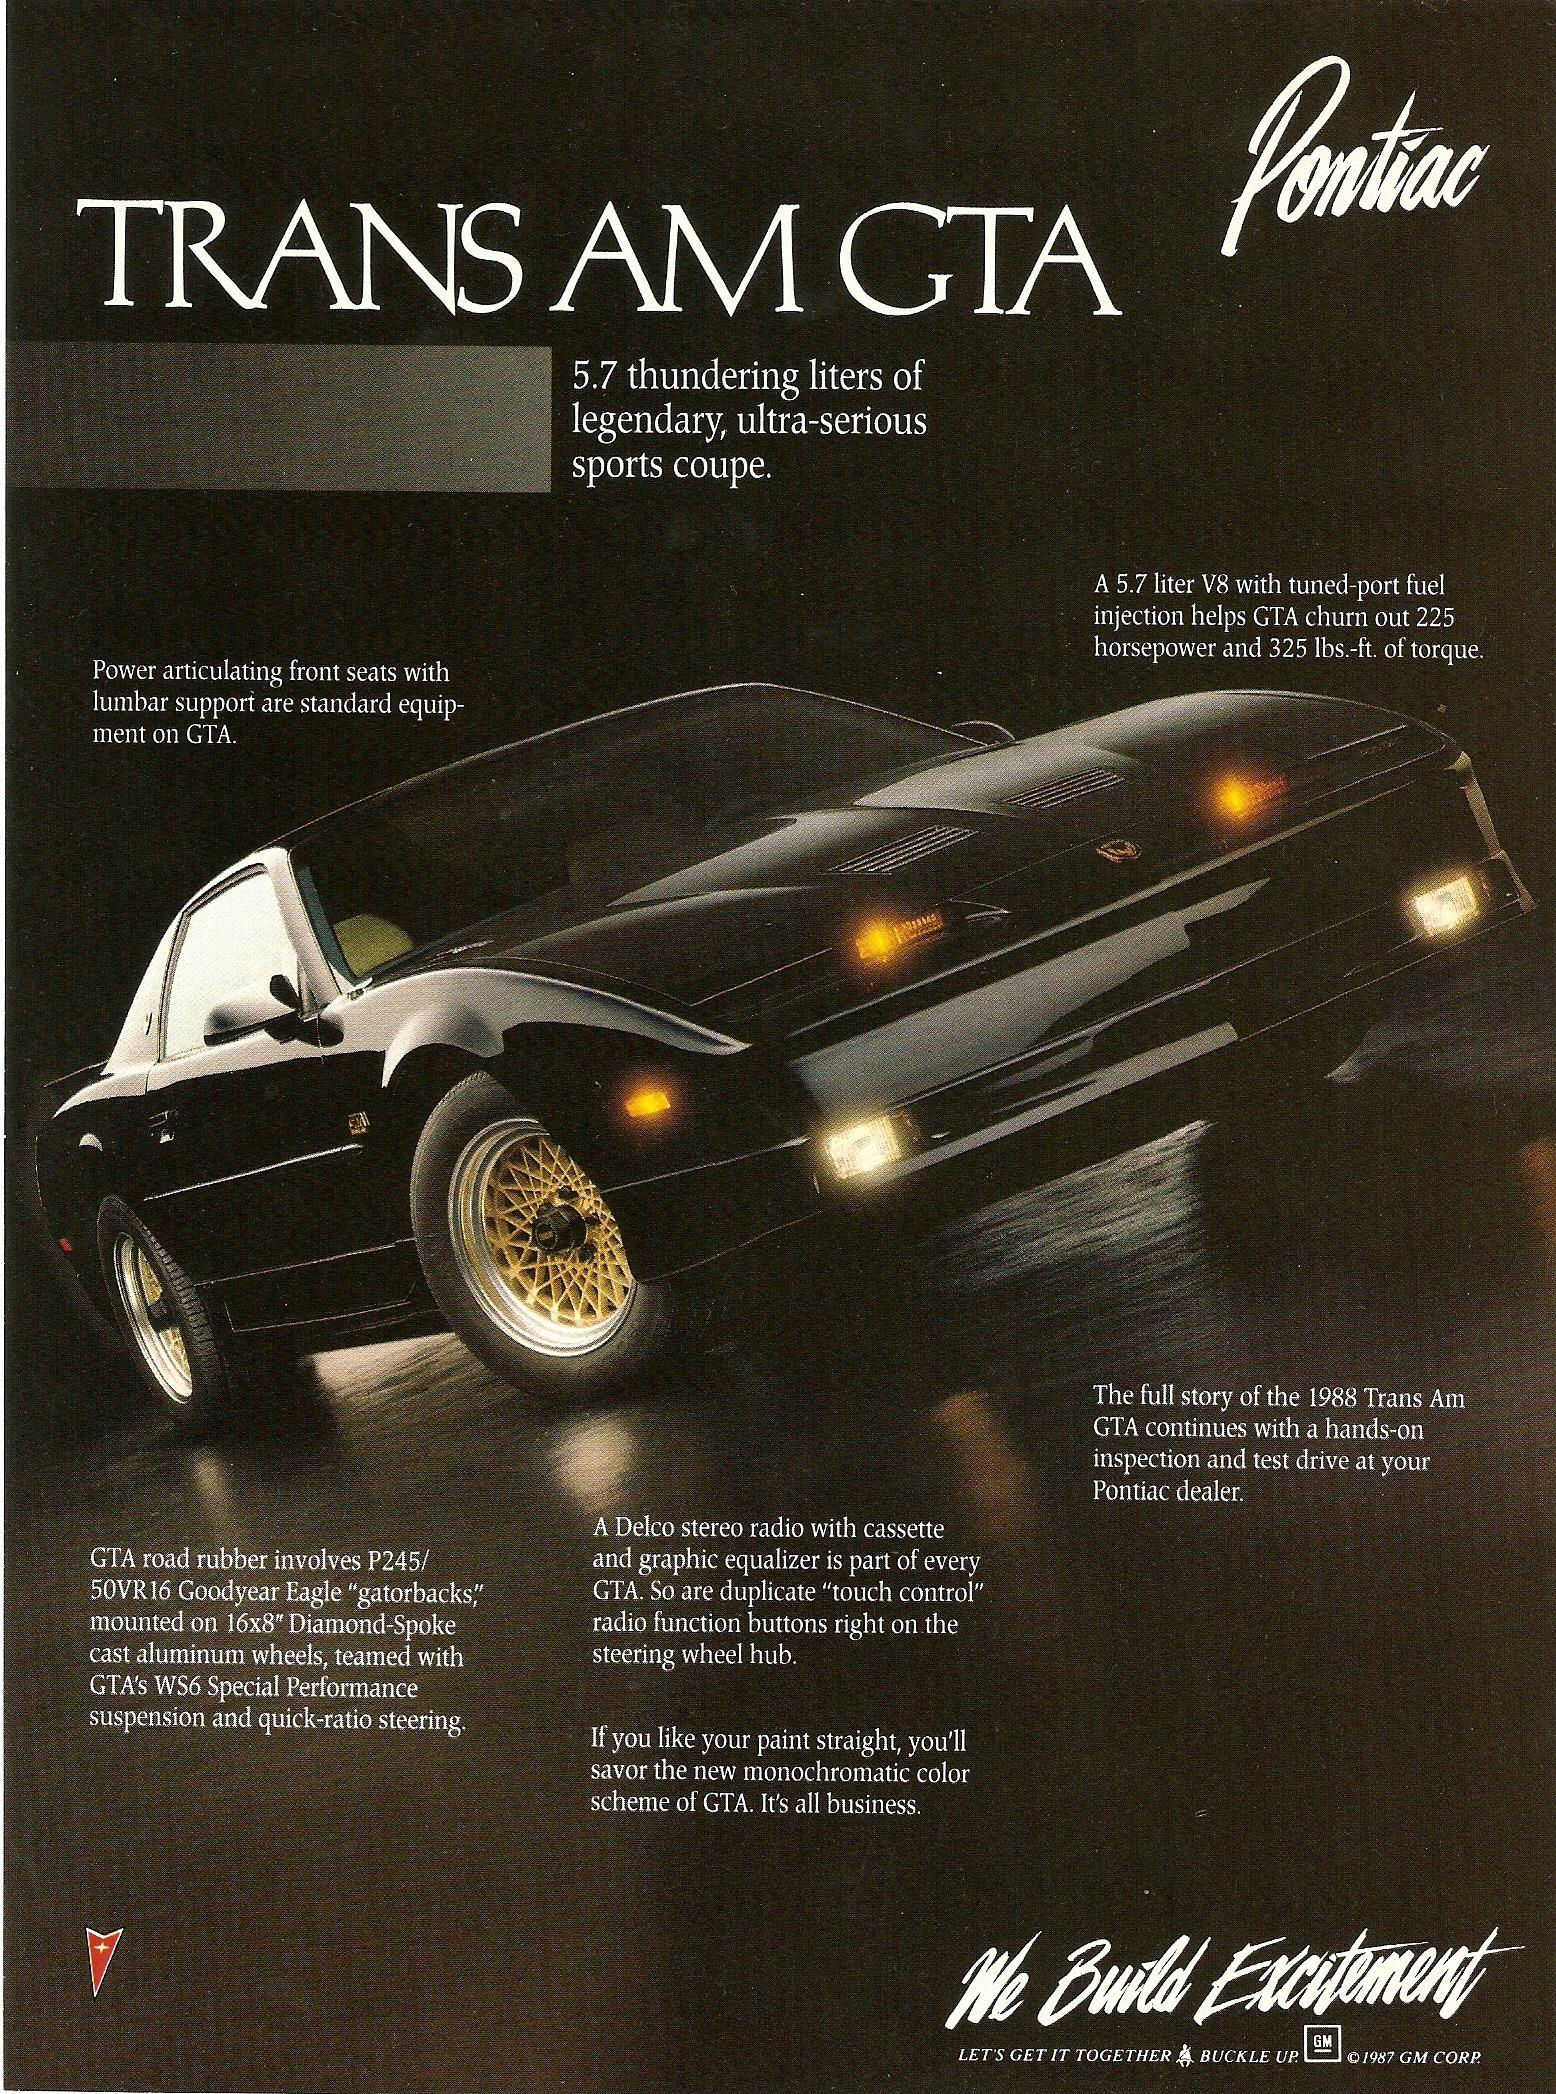 Gm Efi Magazine 1989 300zx Fuel Filter Removal With Most Manufacturer And Track Tests Showing The Gta In A Close Heat None Other Than Corvette Trans Am Indirectly Removed